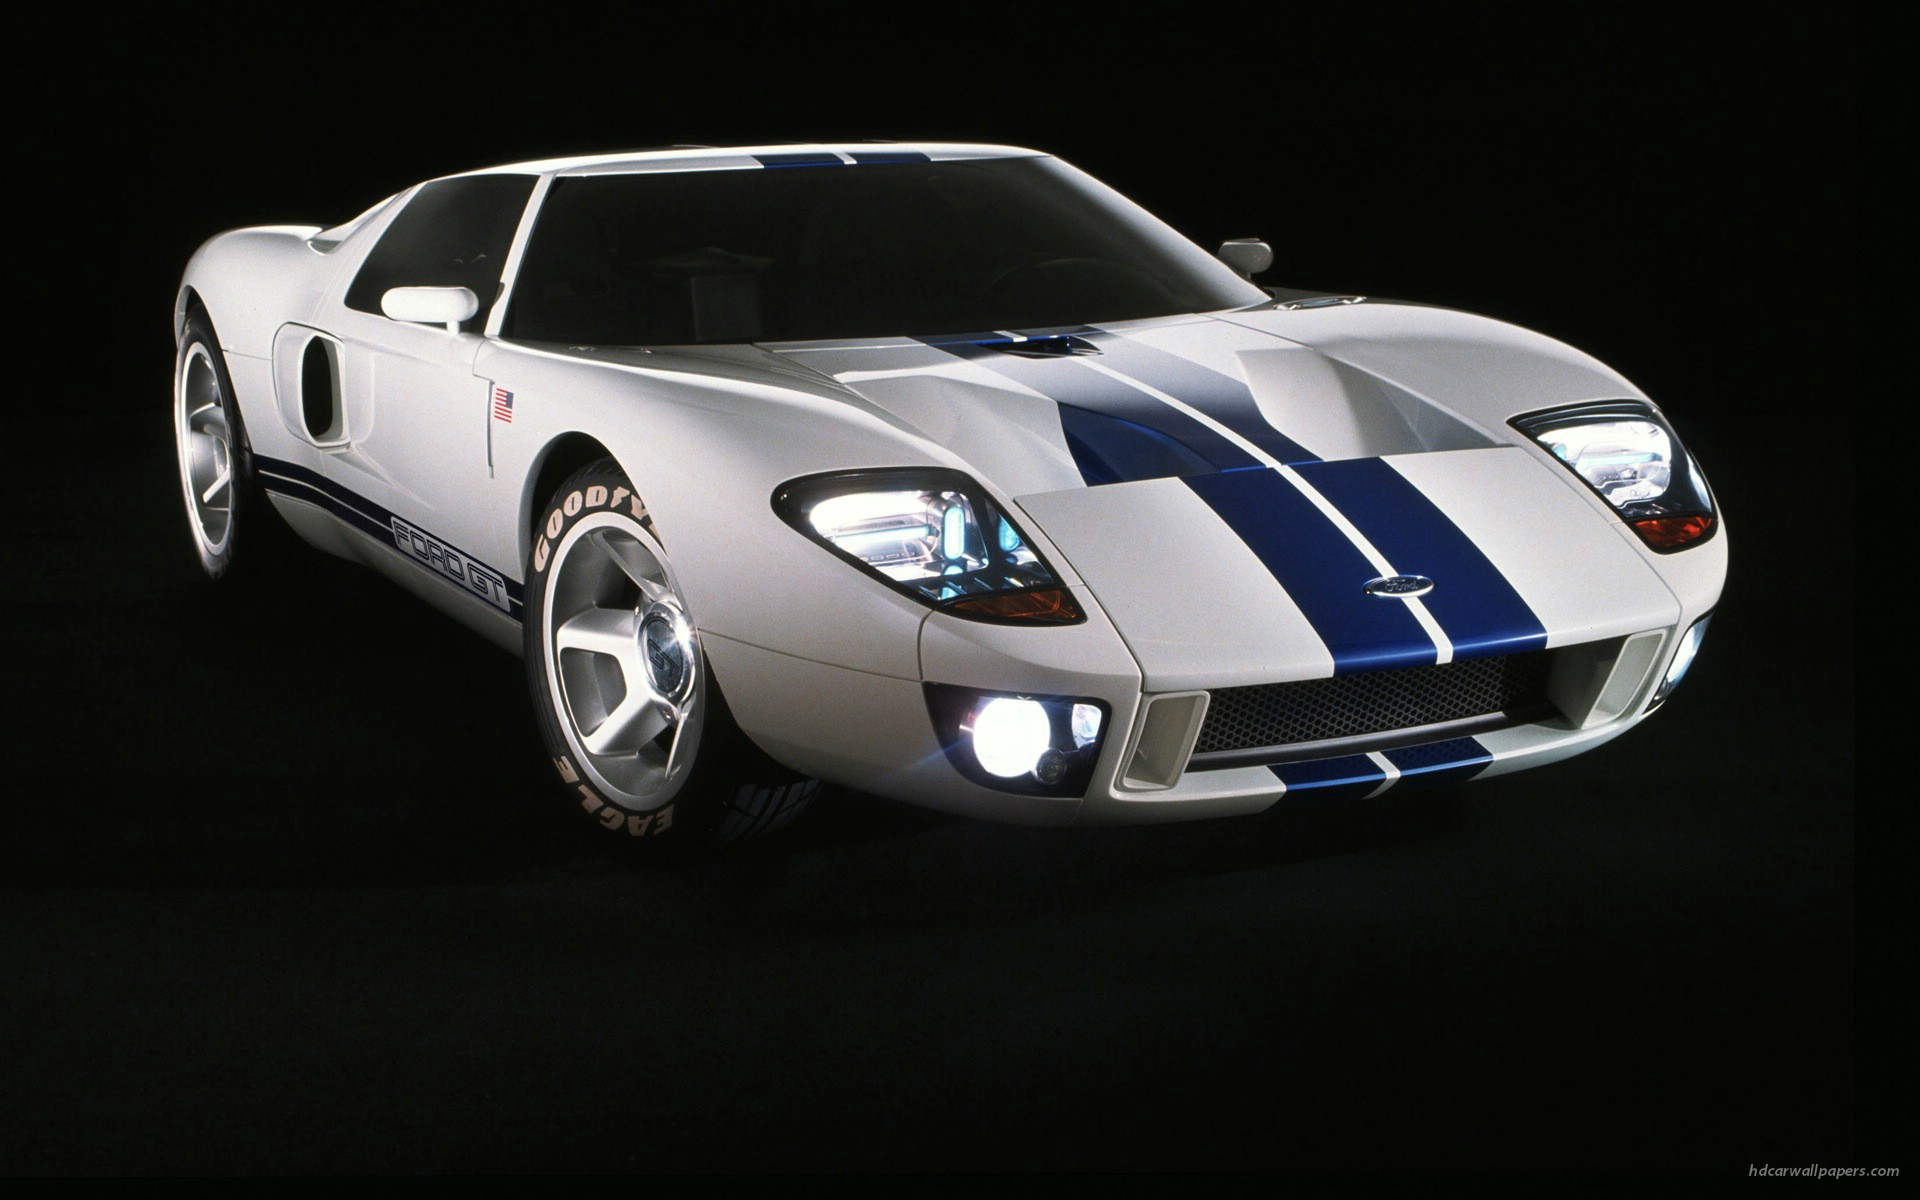 HD Desktop Wallpapers Backgrounds Widescreen HD Wallpapers ford gt 1920x1200